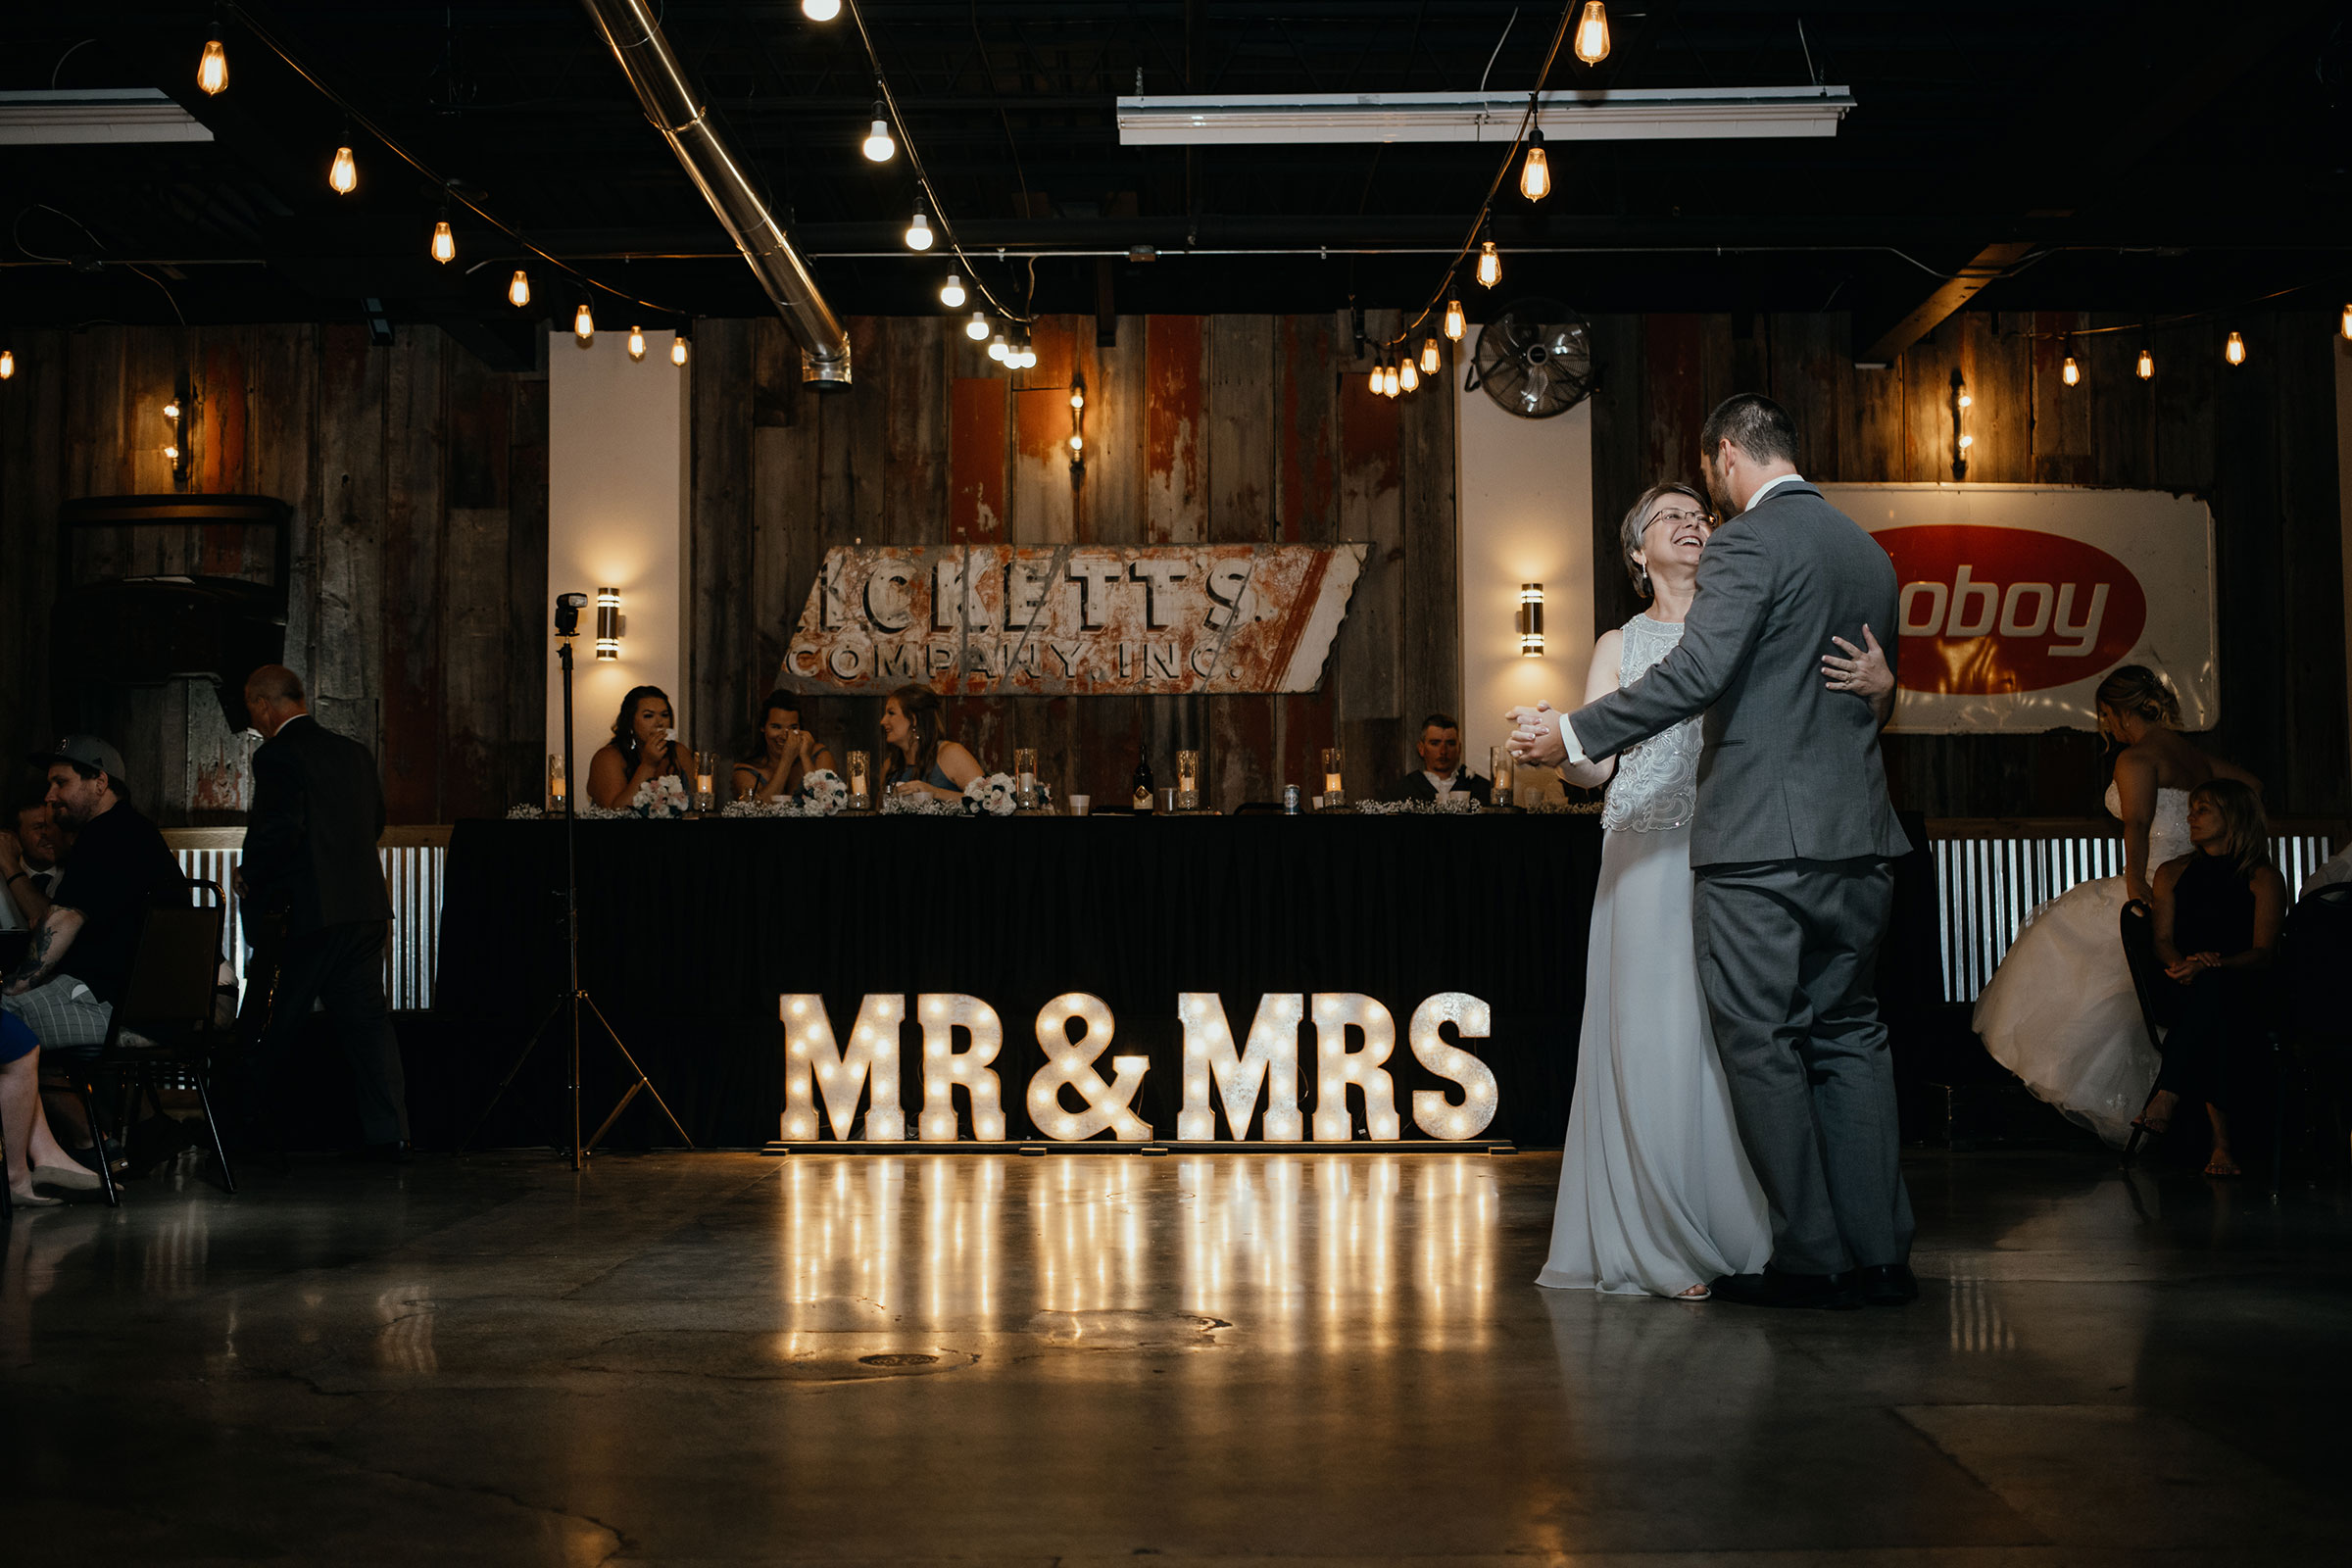 mother-of-groom-dancing-with-son-smiling-decades-event-center-building-desmoines-iowa-raelyn-ramey-photography..jpg